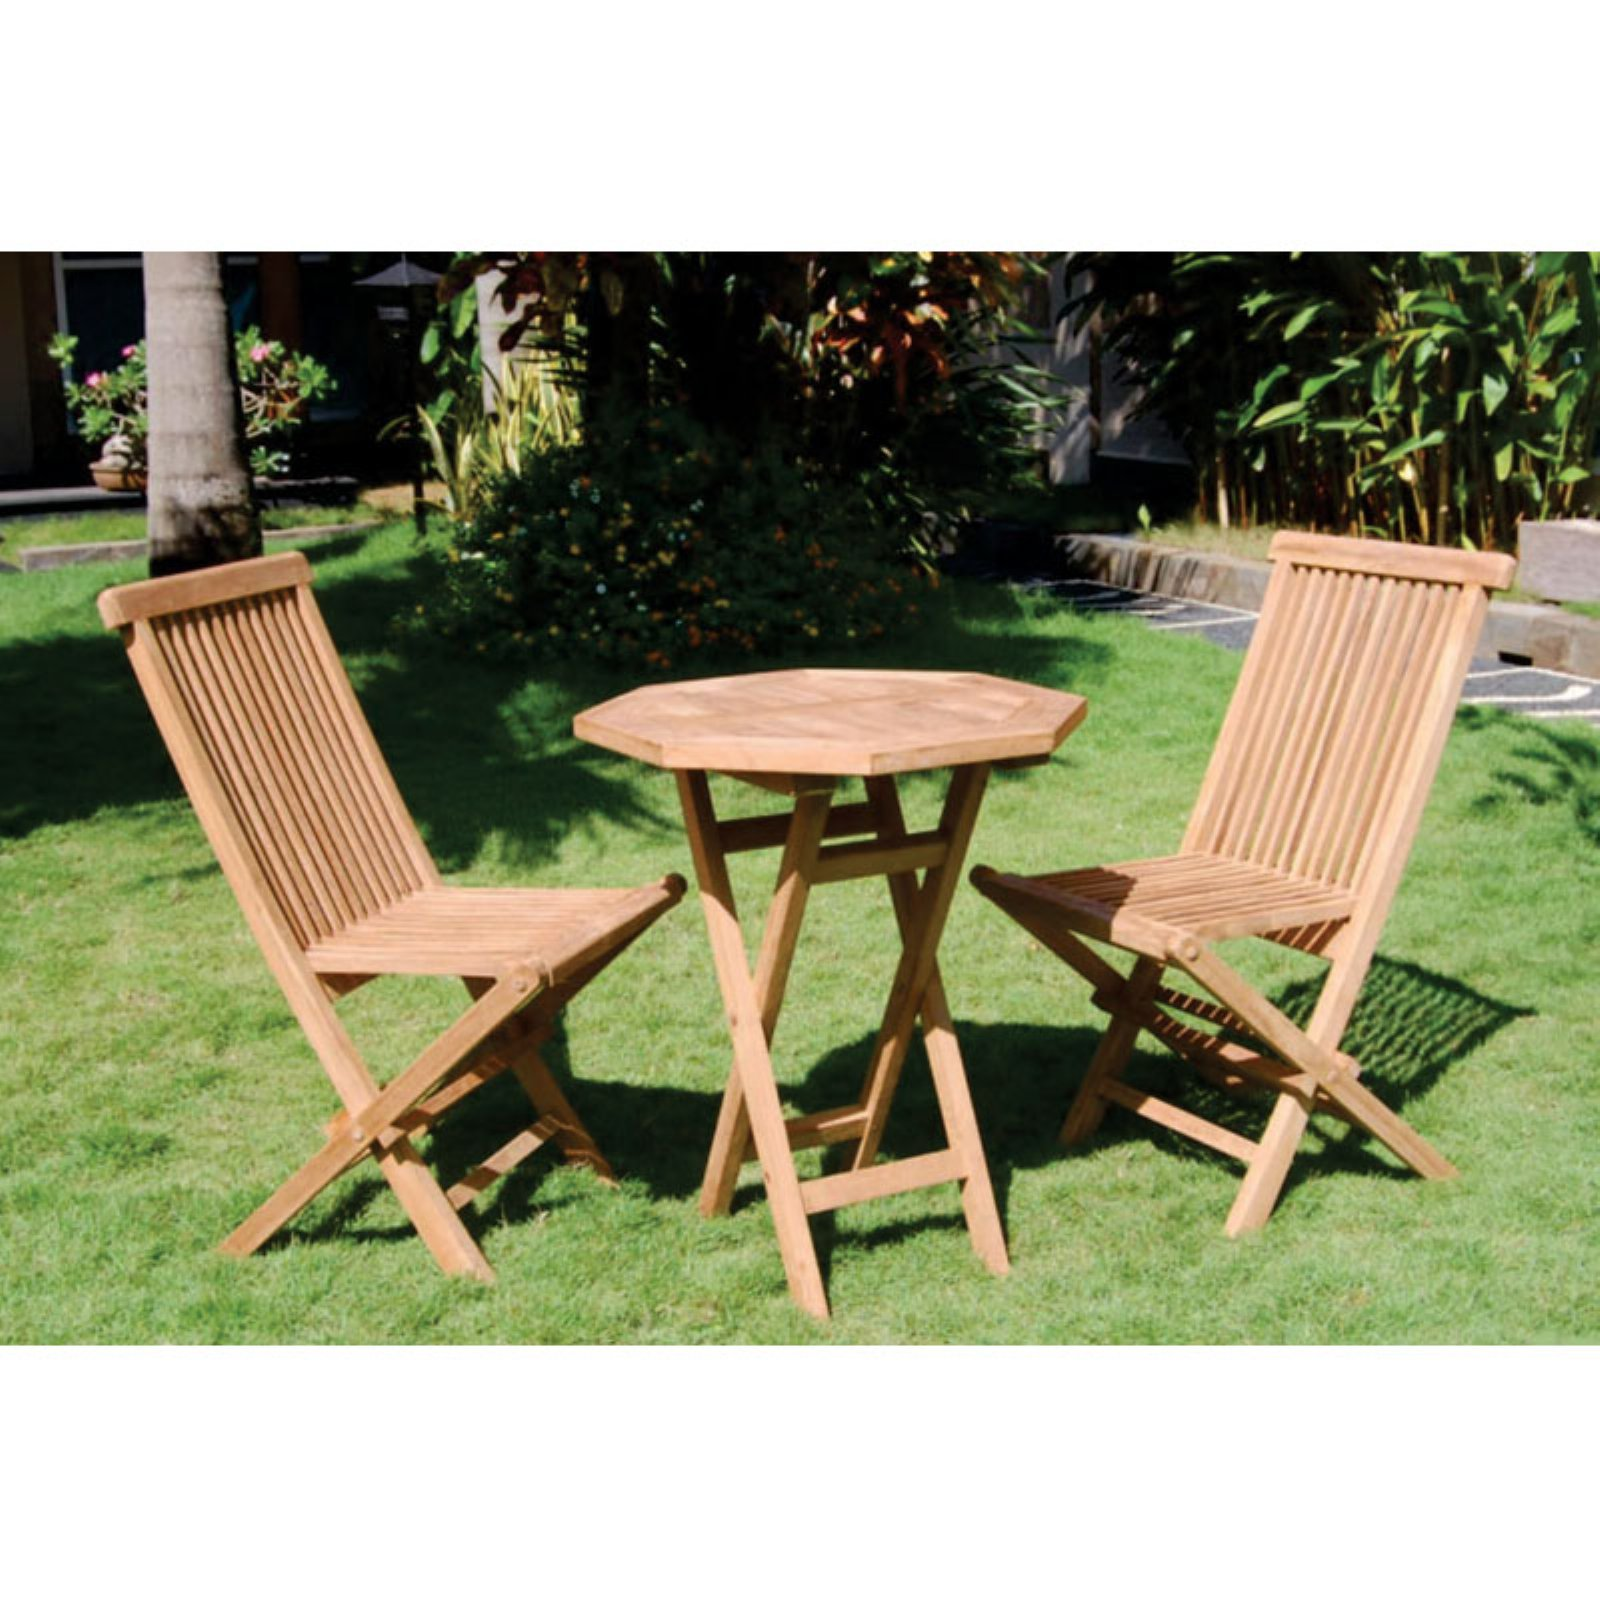 Bamboo54 Teak 3 Piece Folding Outdoor Bistro Set